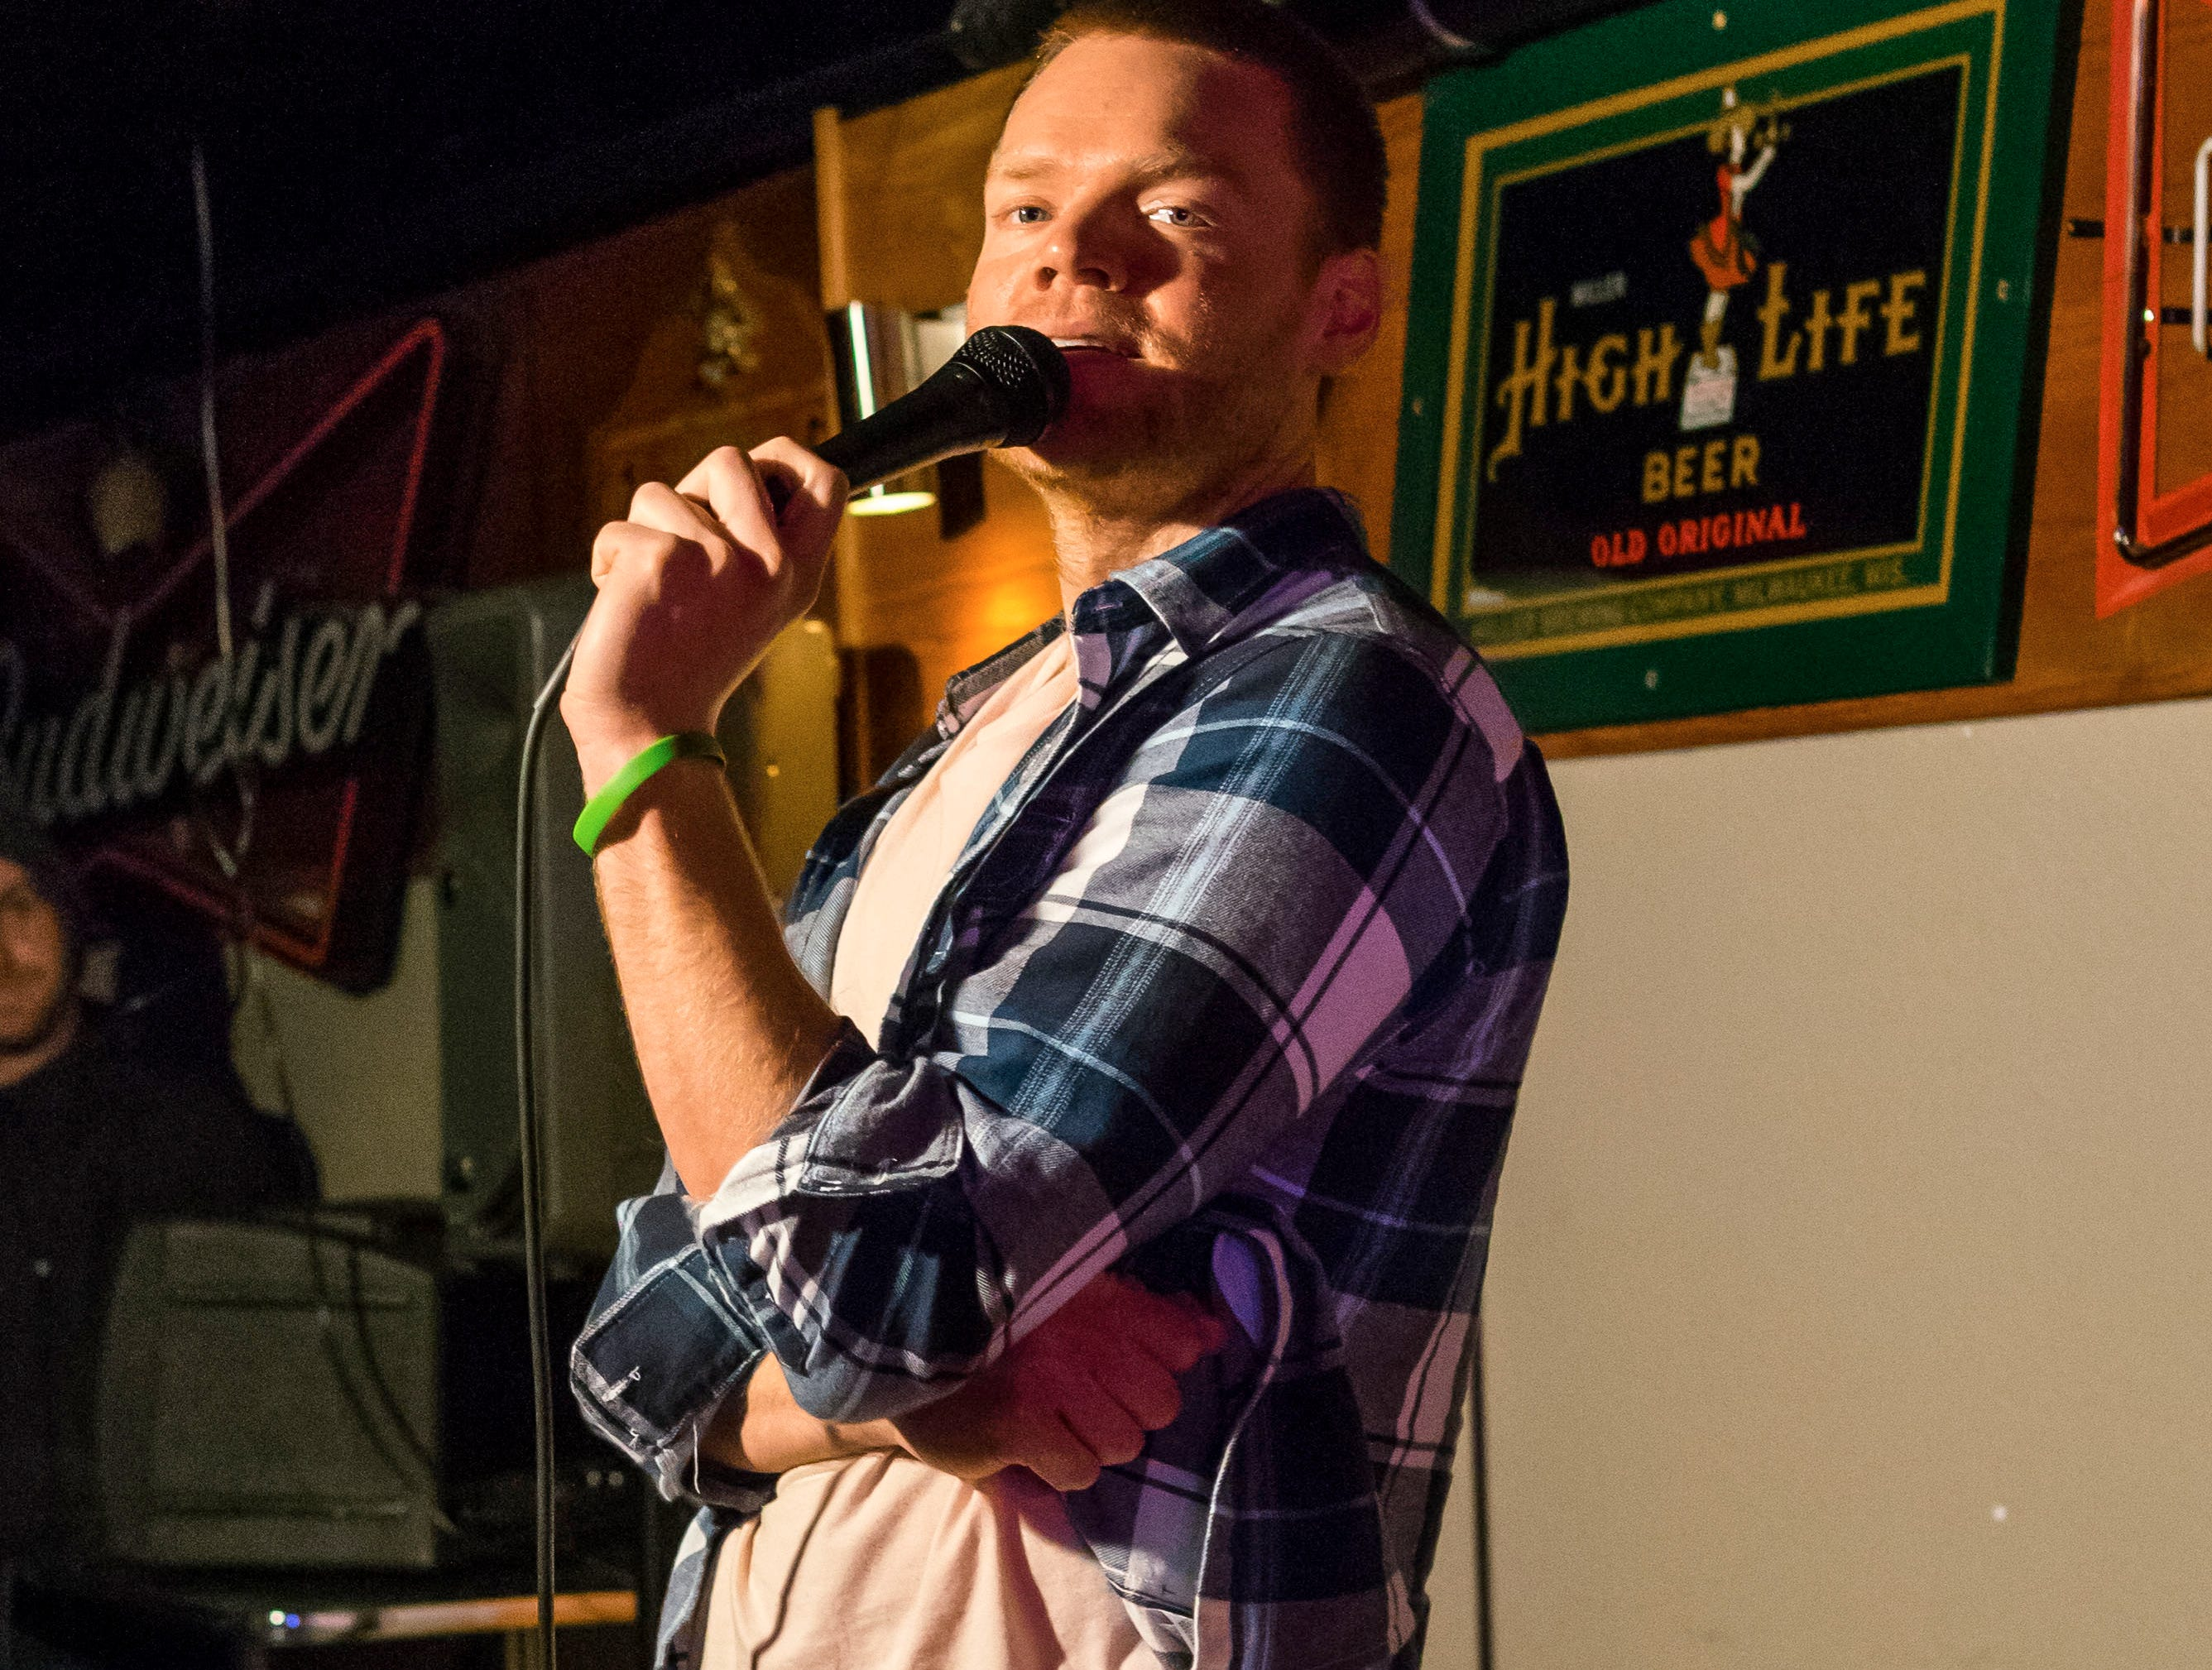 Lucas Hirl, 33, of Los Angeles, performing stand up comedy, Friday, Dec. 21, at the Bomb Shelter Comedy Showcase, hosted by the Beechwood.